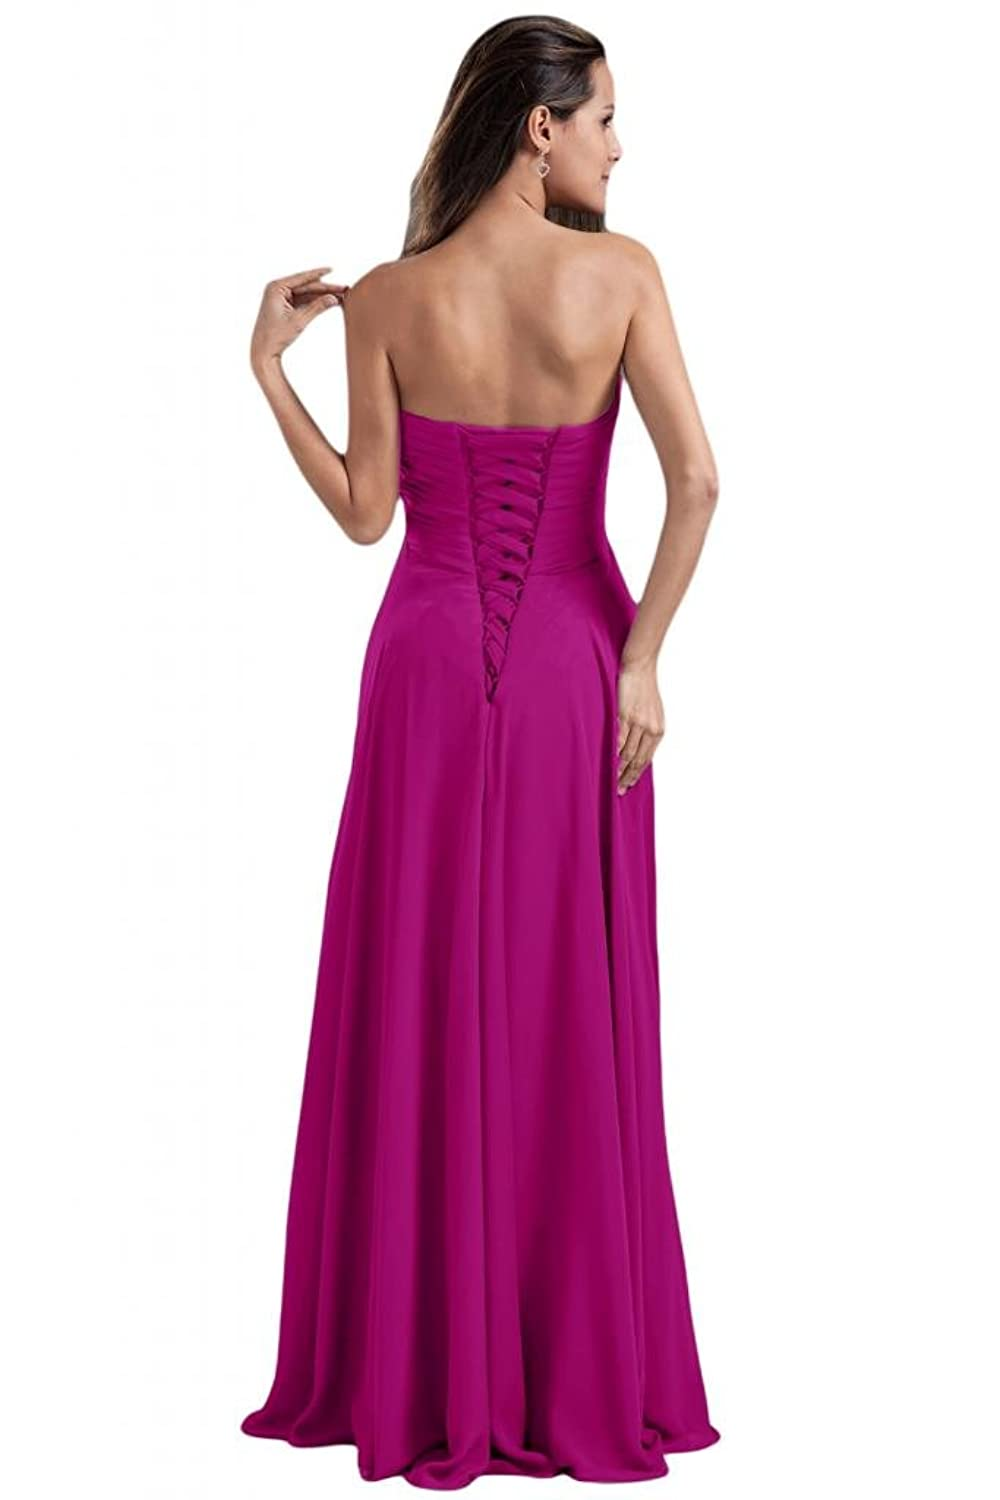 Sunvary Vintage Stretch Satin A Line Prom Pageant Dresses for Women New Stylish